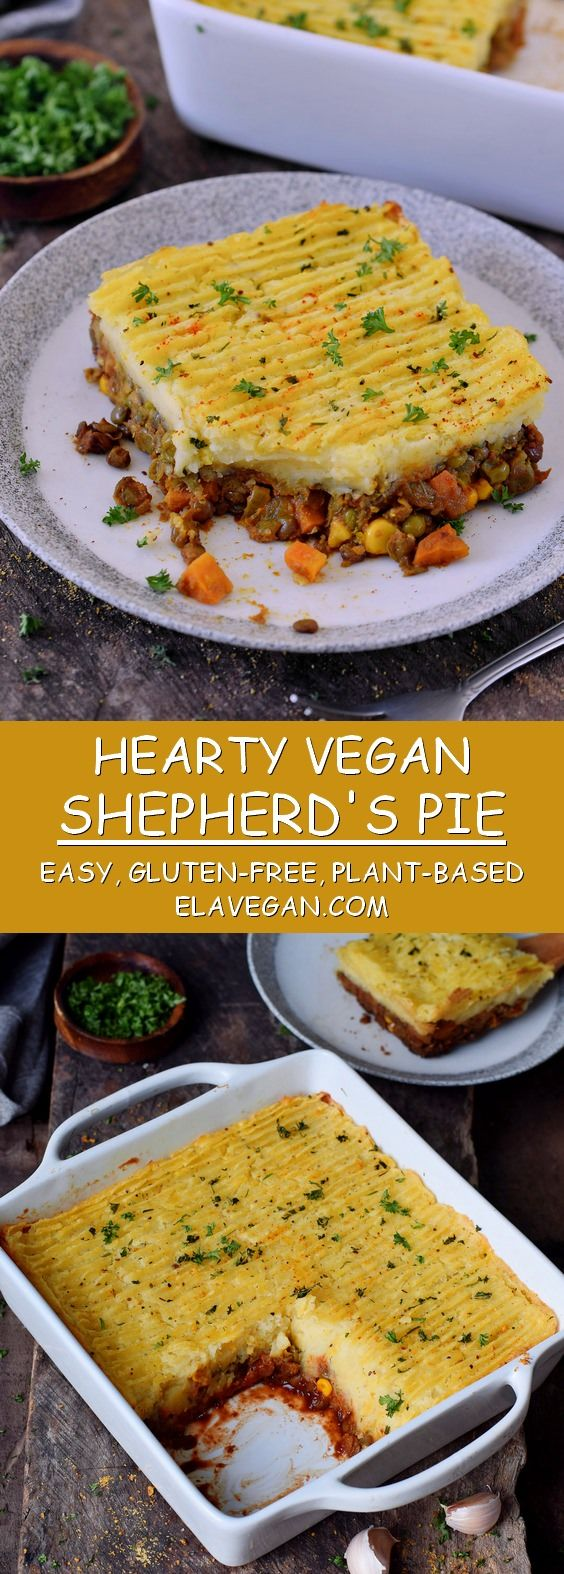 Hearty vegan Shepherd's Pie (without lamb) made with lentils and veggies. This comfort dish is easy to make, gluten-free, protein-rich and very delicious. This recipe is also known as cottage pie which, however, is made with beef. My vegan version is perfect for dinner and ready in less than 60 minutes! #vegan #glutenfree #shepherdspie #cottagepie #mashedpotatoes | elavegan.com #beefdishes